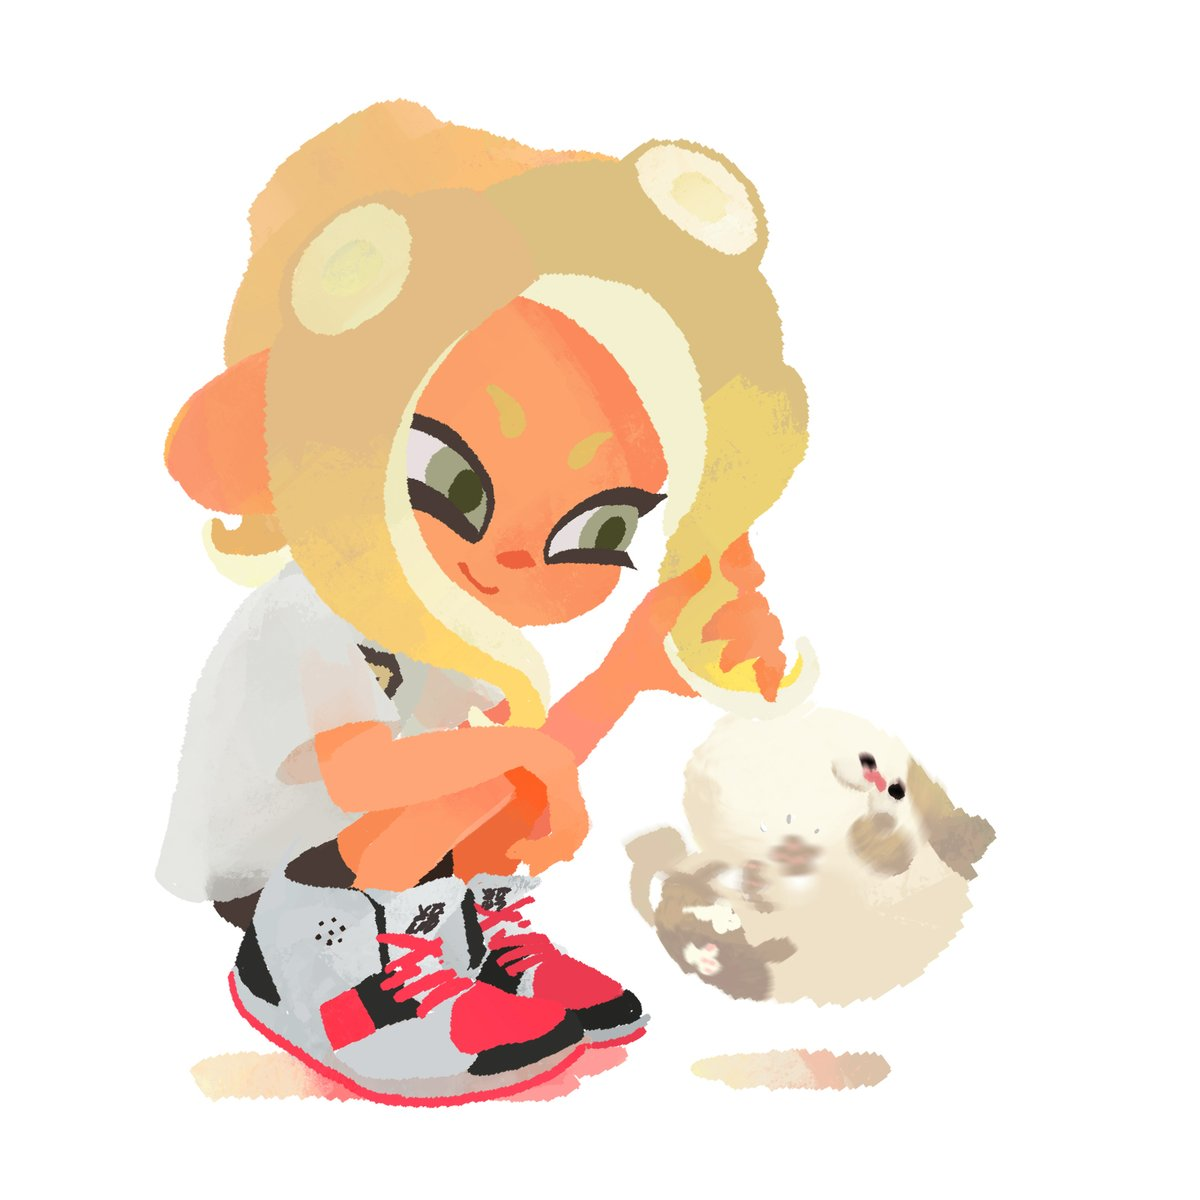 Splatoon 2's next weapons arriving early next month